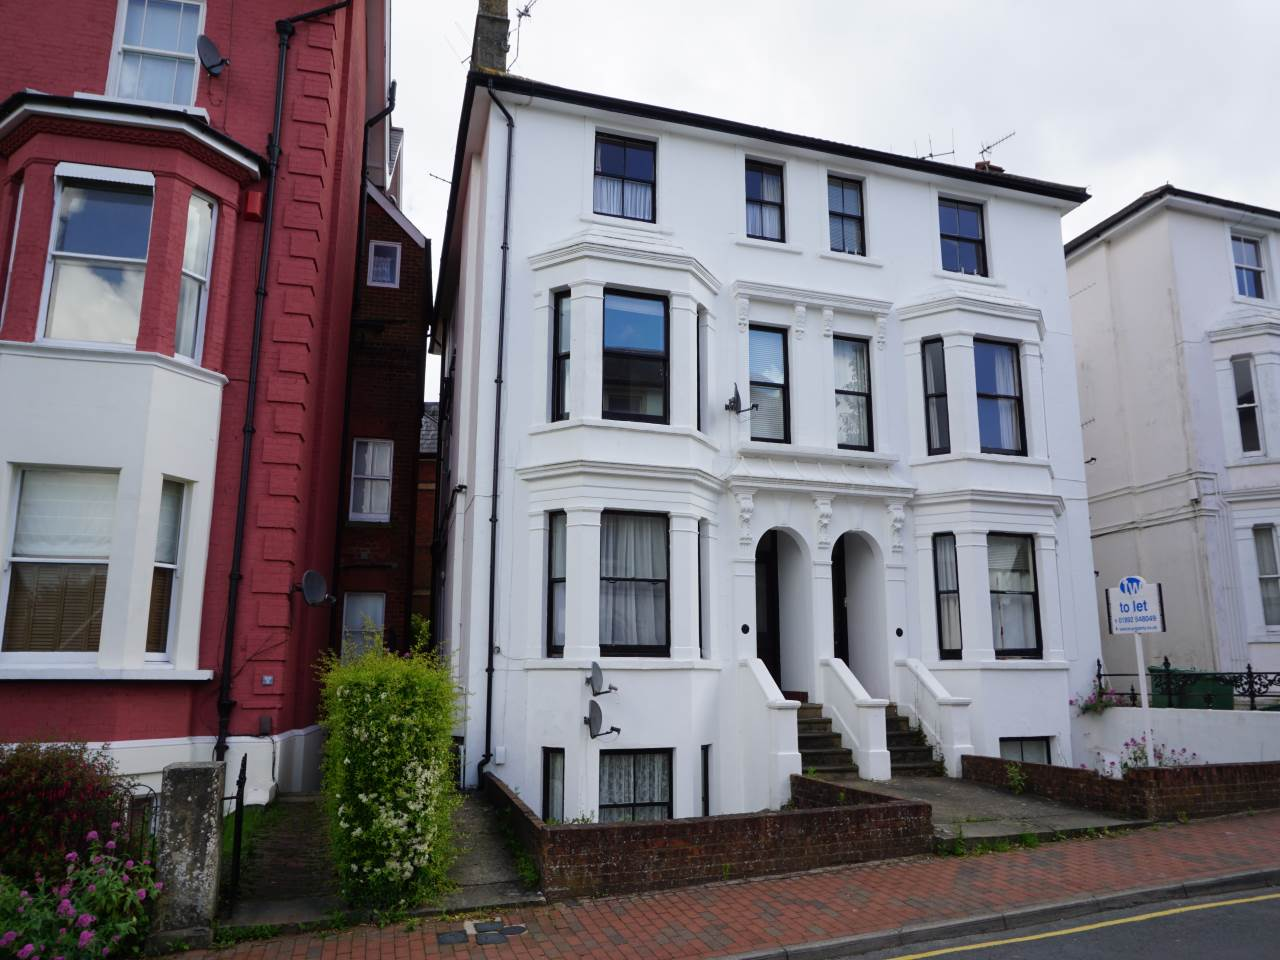 1 Bedroom Flat To Rent Mount Sion Tunbridge Wells Kent Iphone Wallpapers Free Beautiful  HD Wallpapers, Images Over 1000+ [getprihce.gq]